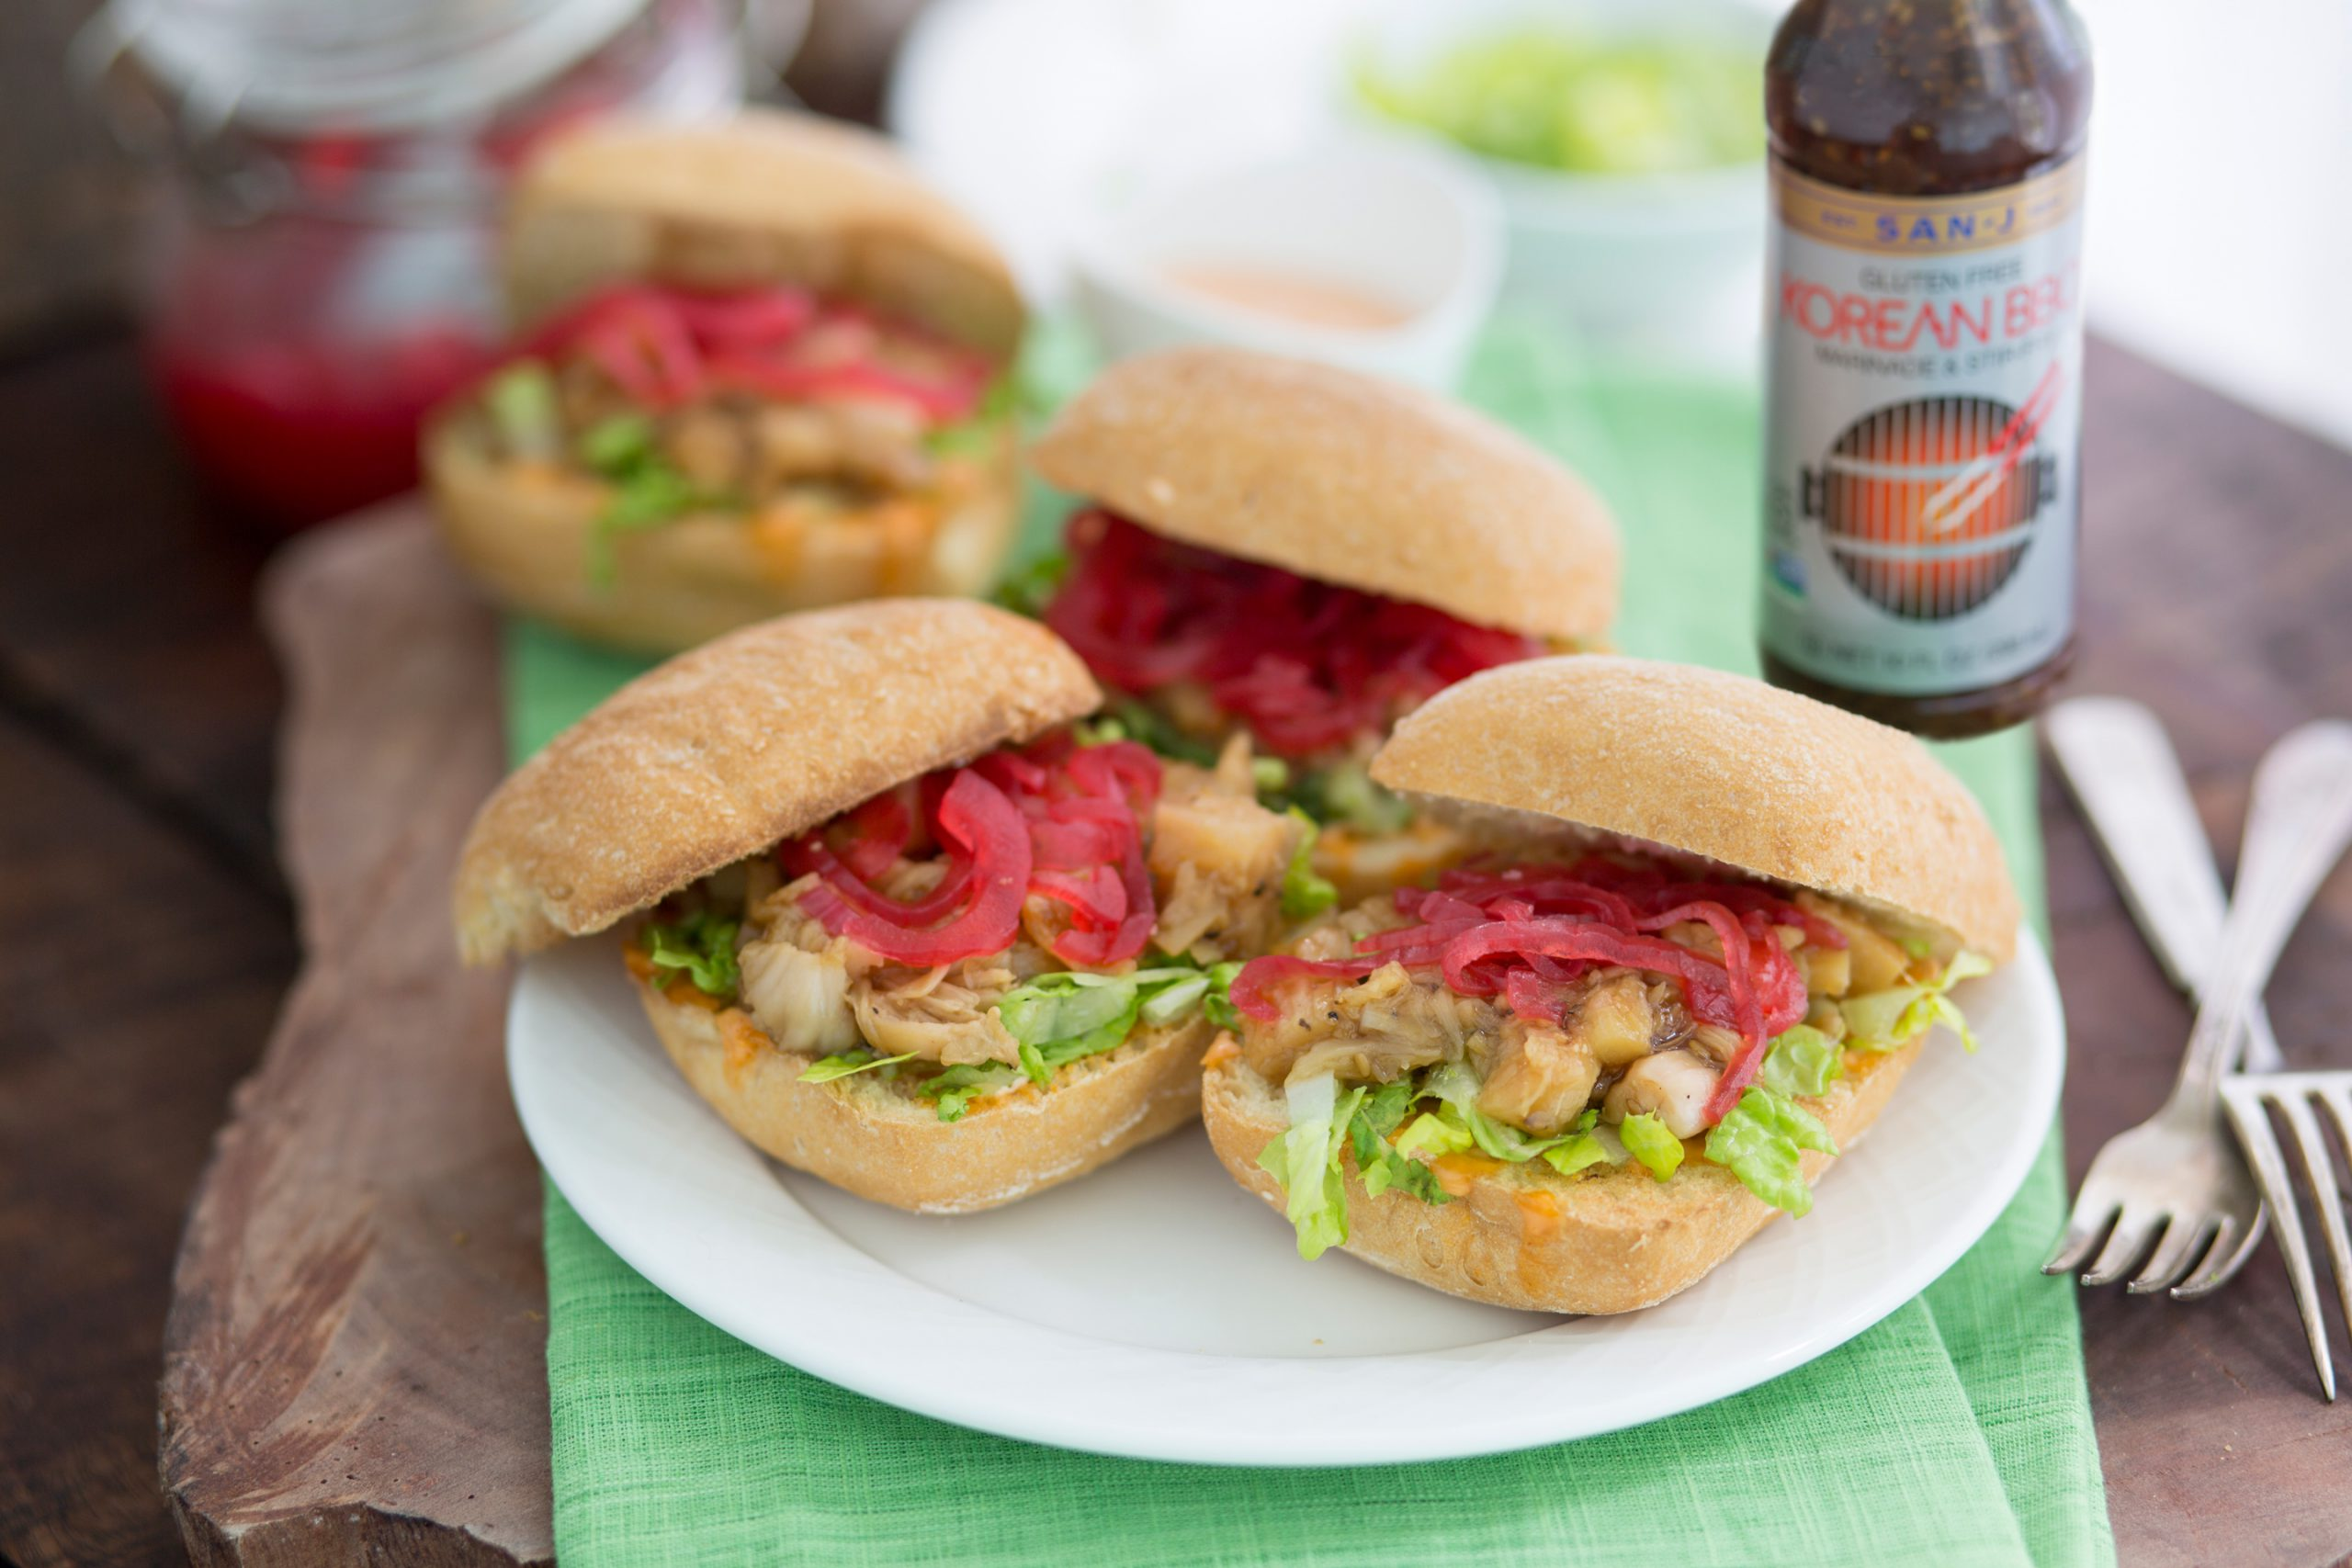 Korean BBQ Jackfruit Sliders on a plate with San-J Soy Sauce Bottle on a table